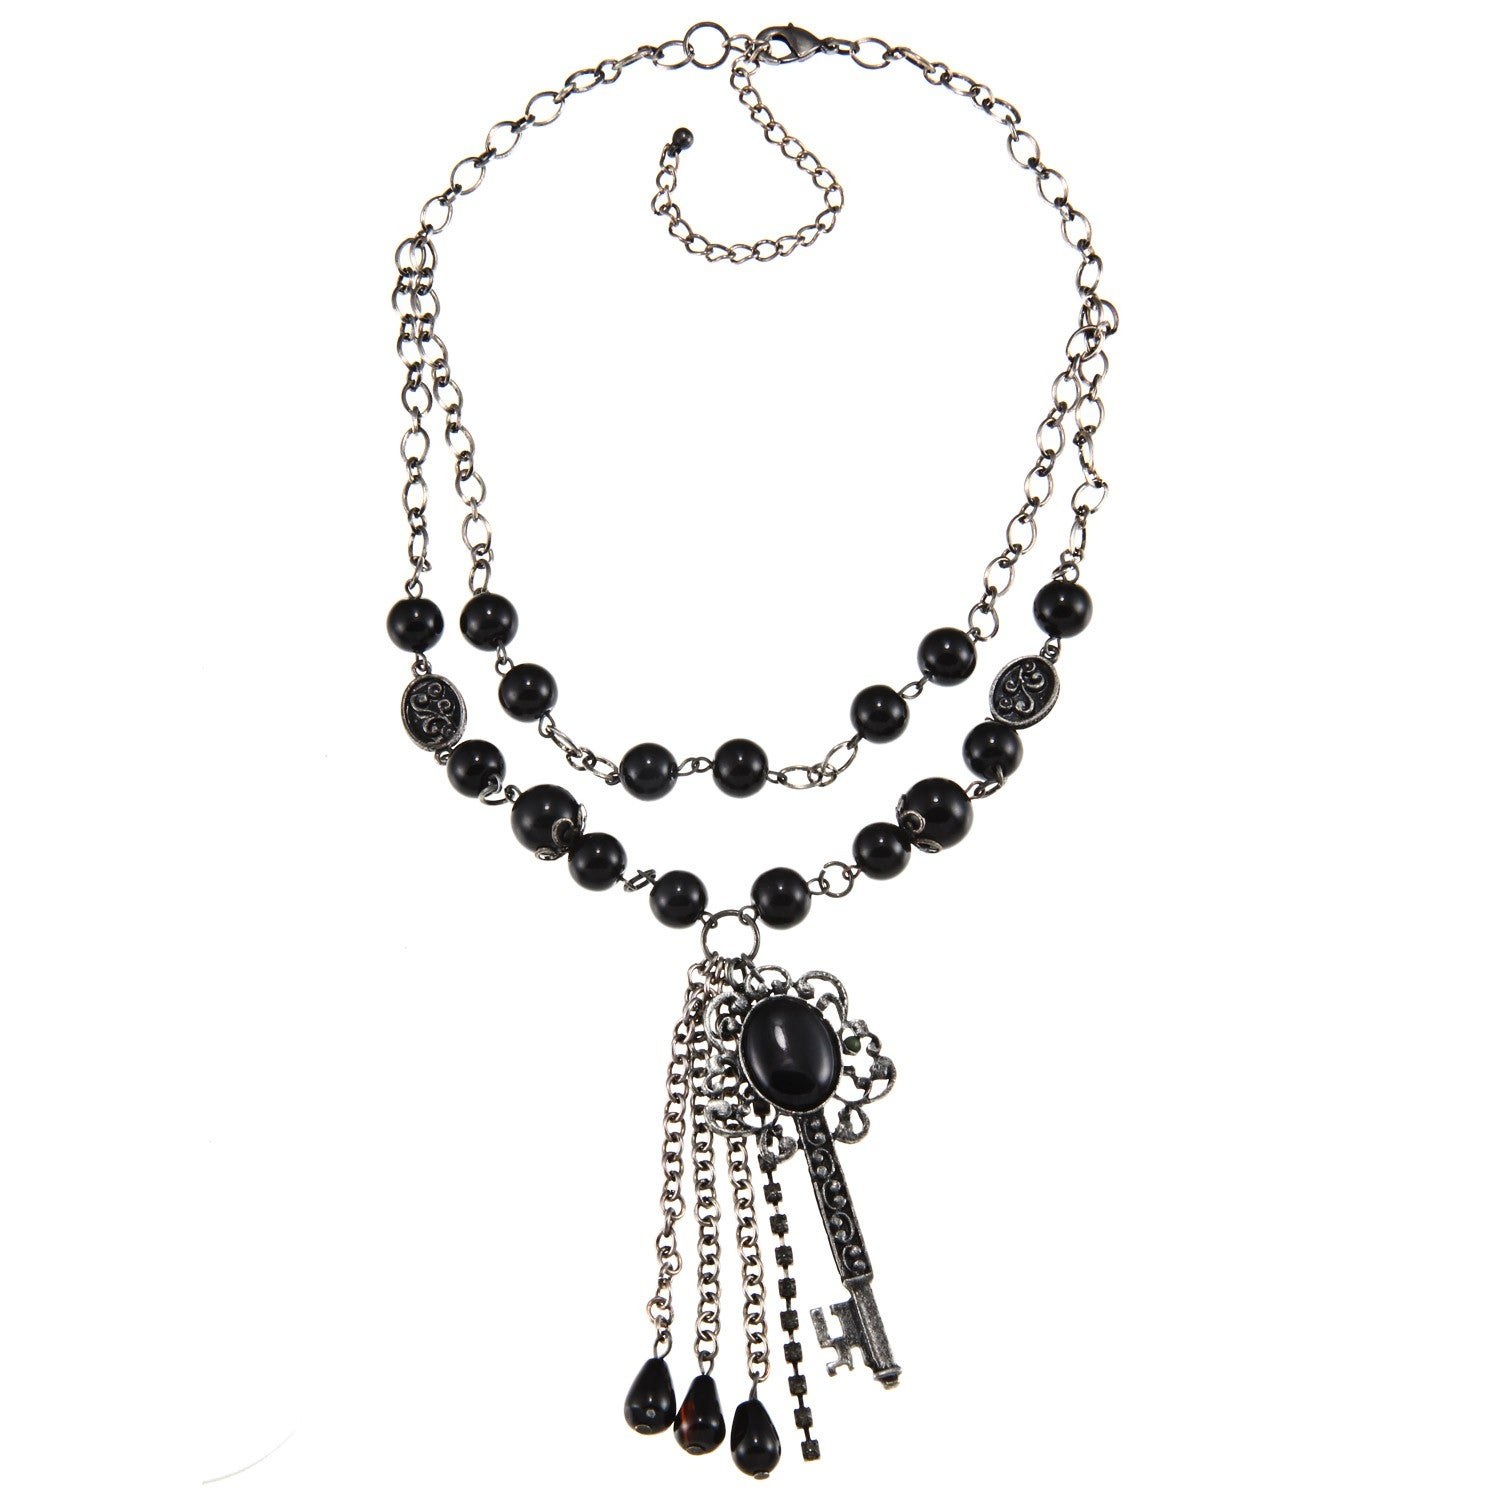 Crystale Silvertone Genuine Black Onyx Bead Key And Tassel Necklace With Regard To Most Popular Ornate Hearts Tassel Necklaces (View 5 of 25)